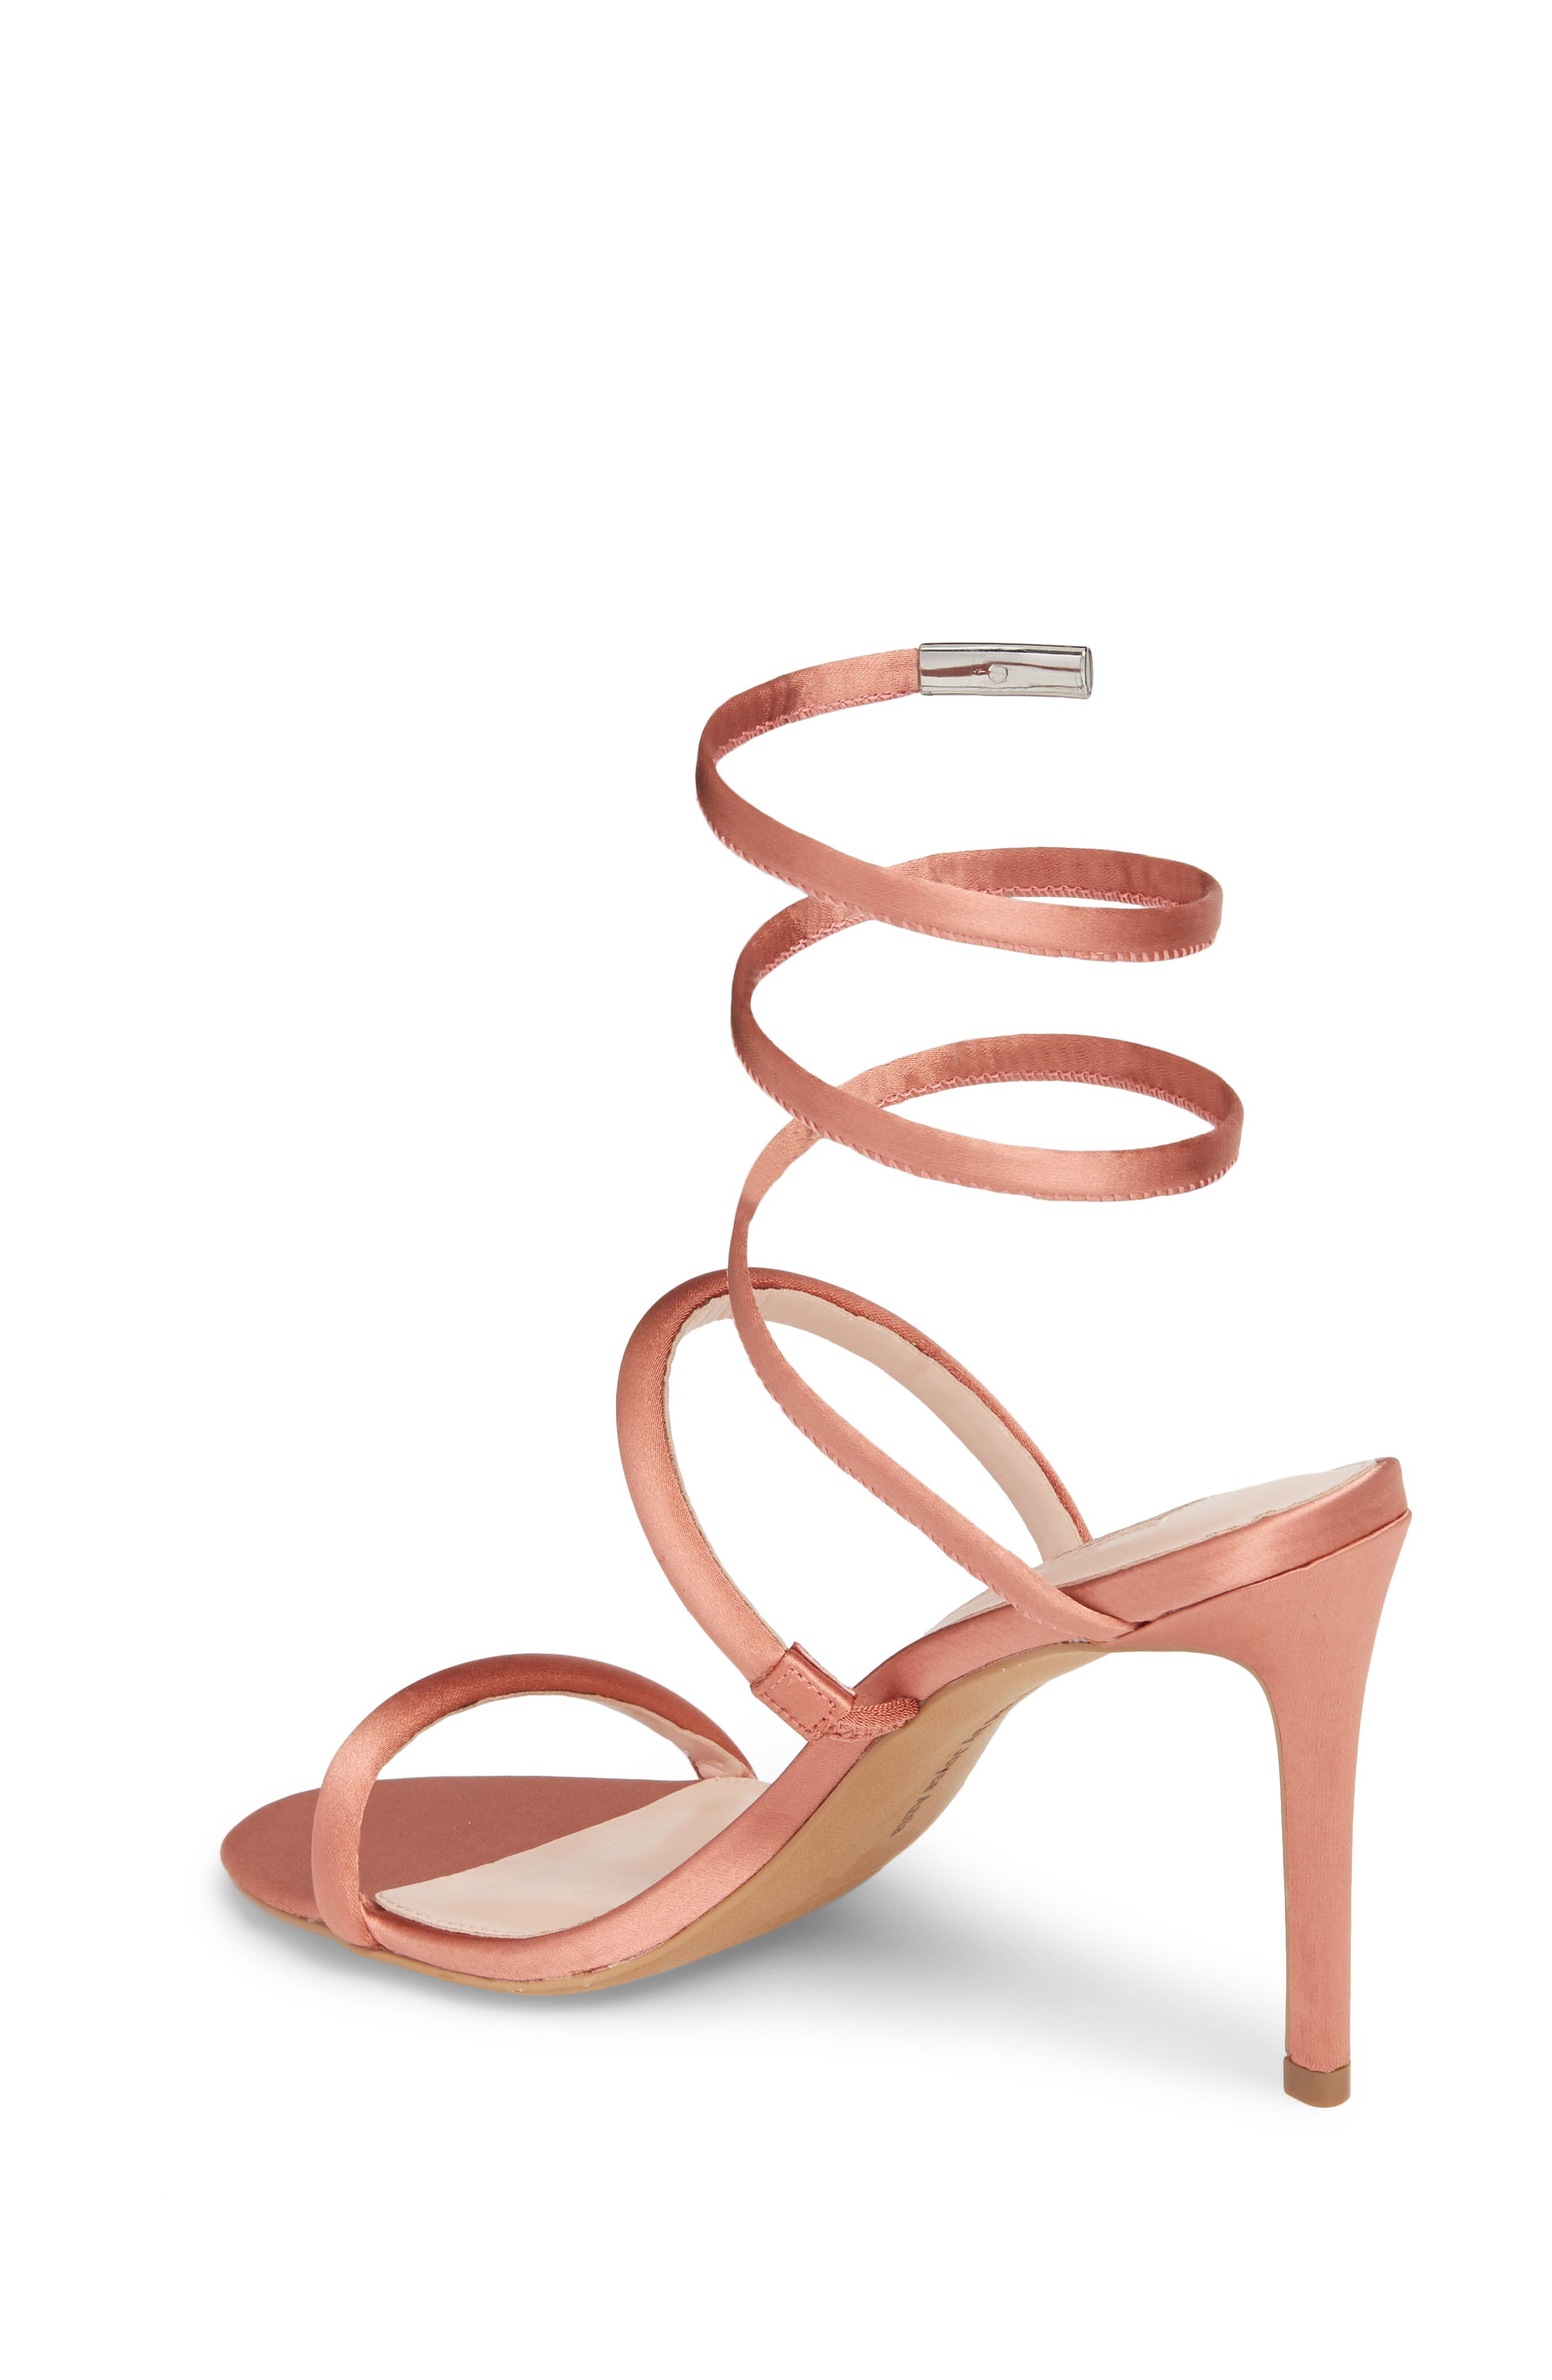 Joia Ankle Wrap Sandal,                             Alternate thumbnail 2, color,                             Dusty Rose Fabric